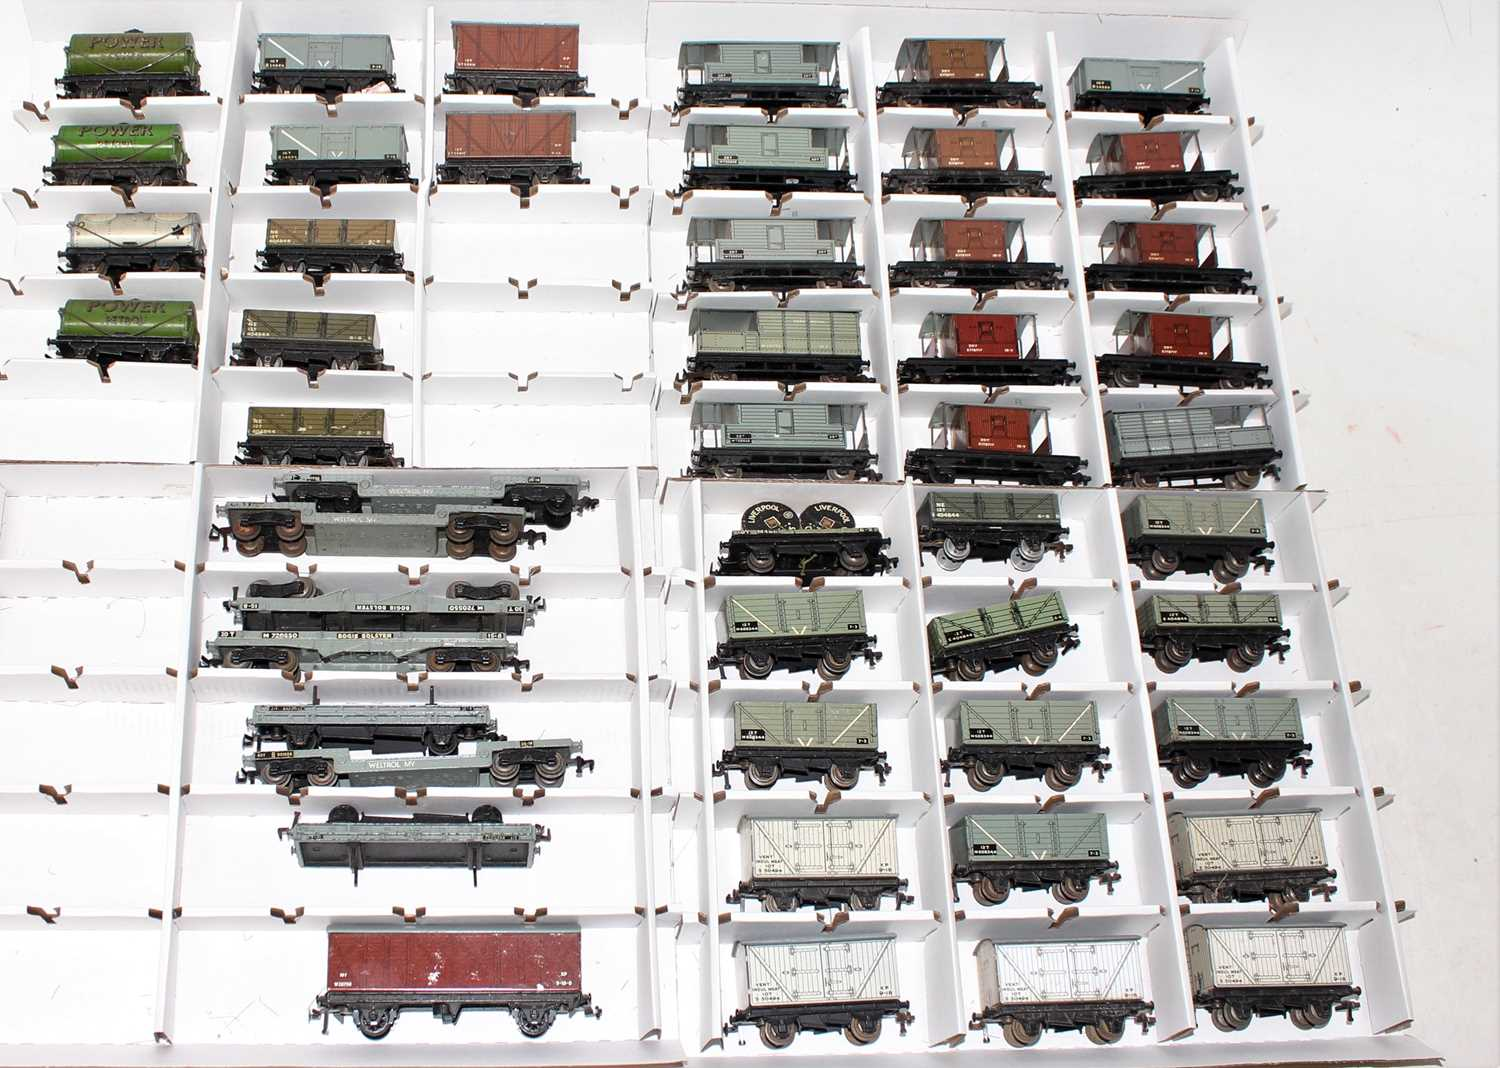 49 Hornby Dublo tinplate/diecast Post War wagons, a varied collection, quality ranging from (F-VG)